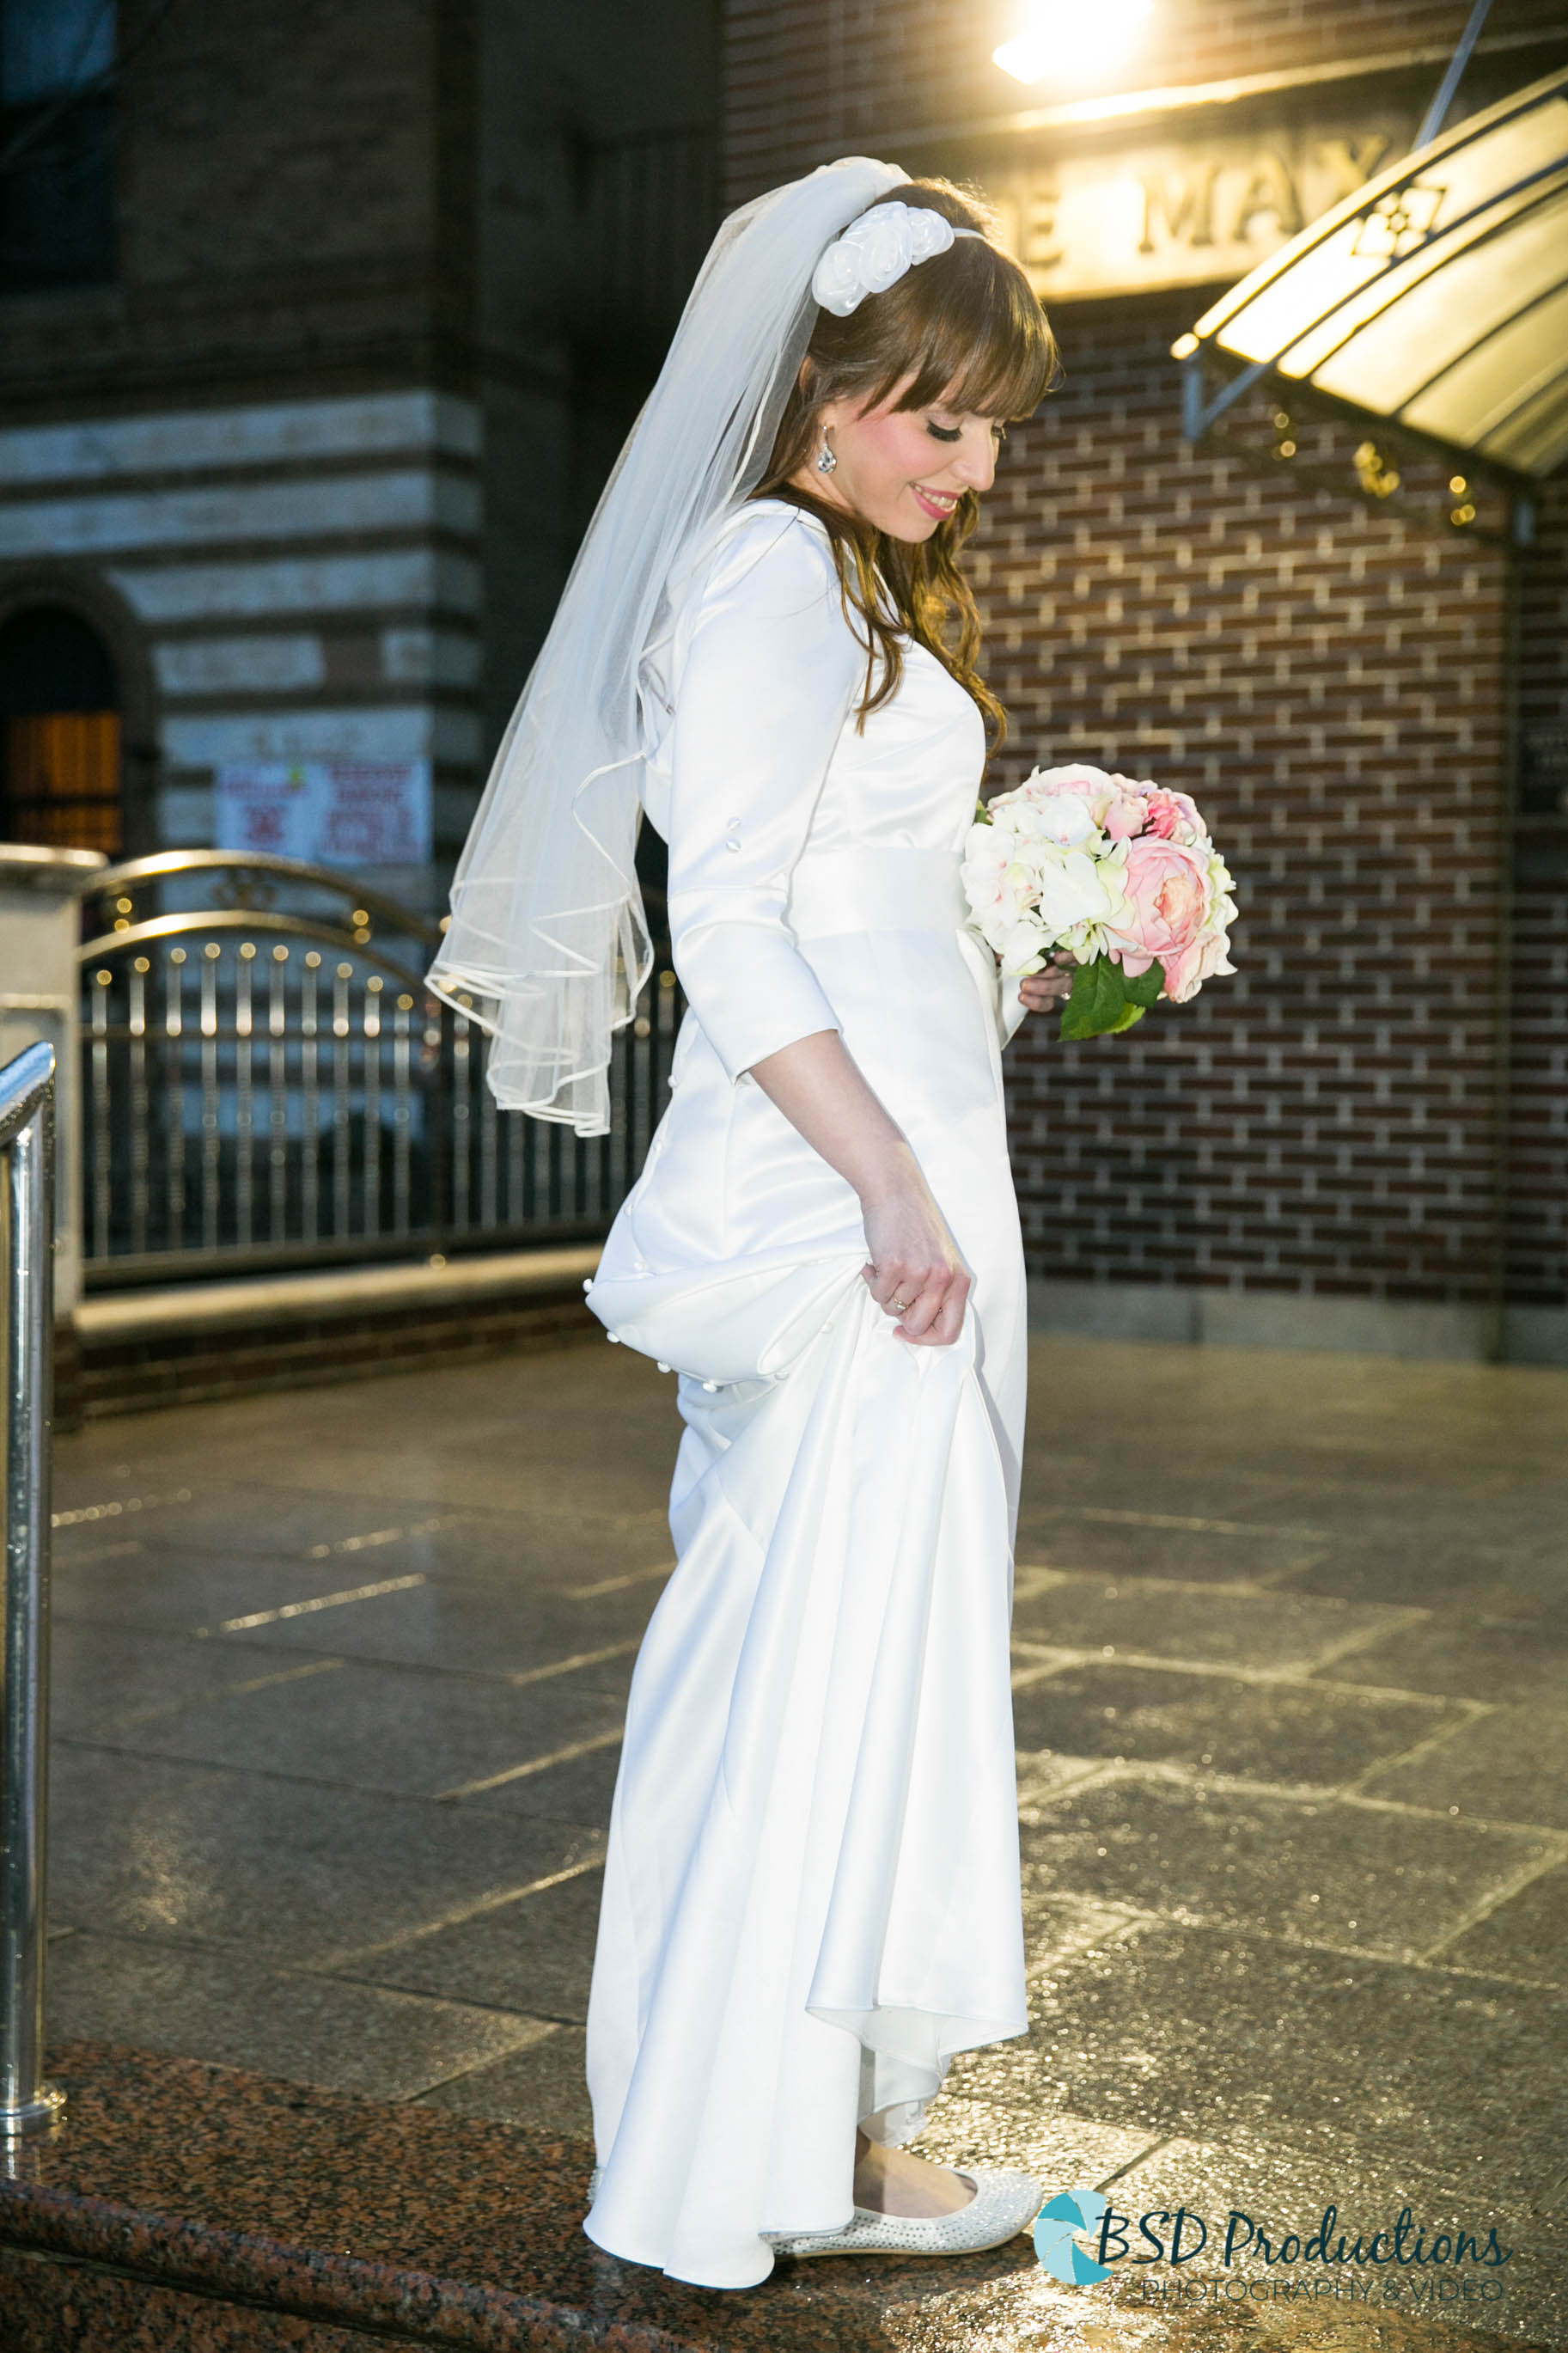 UH5A0112 Wedding – BSD Productions Photography